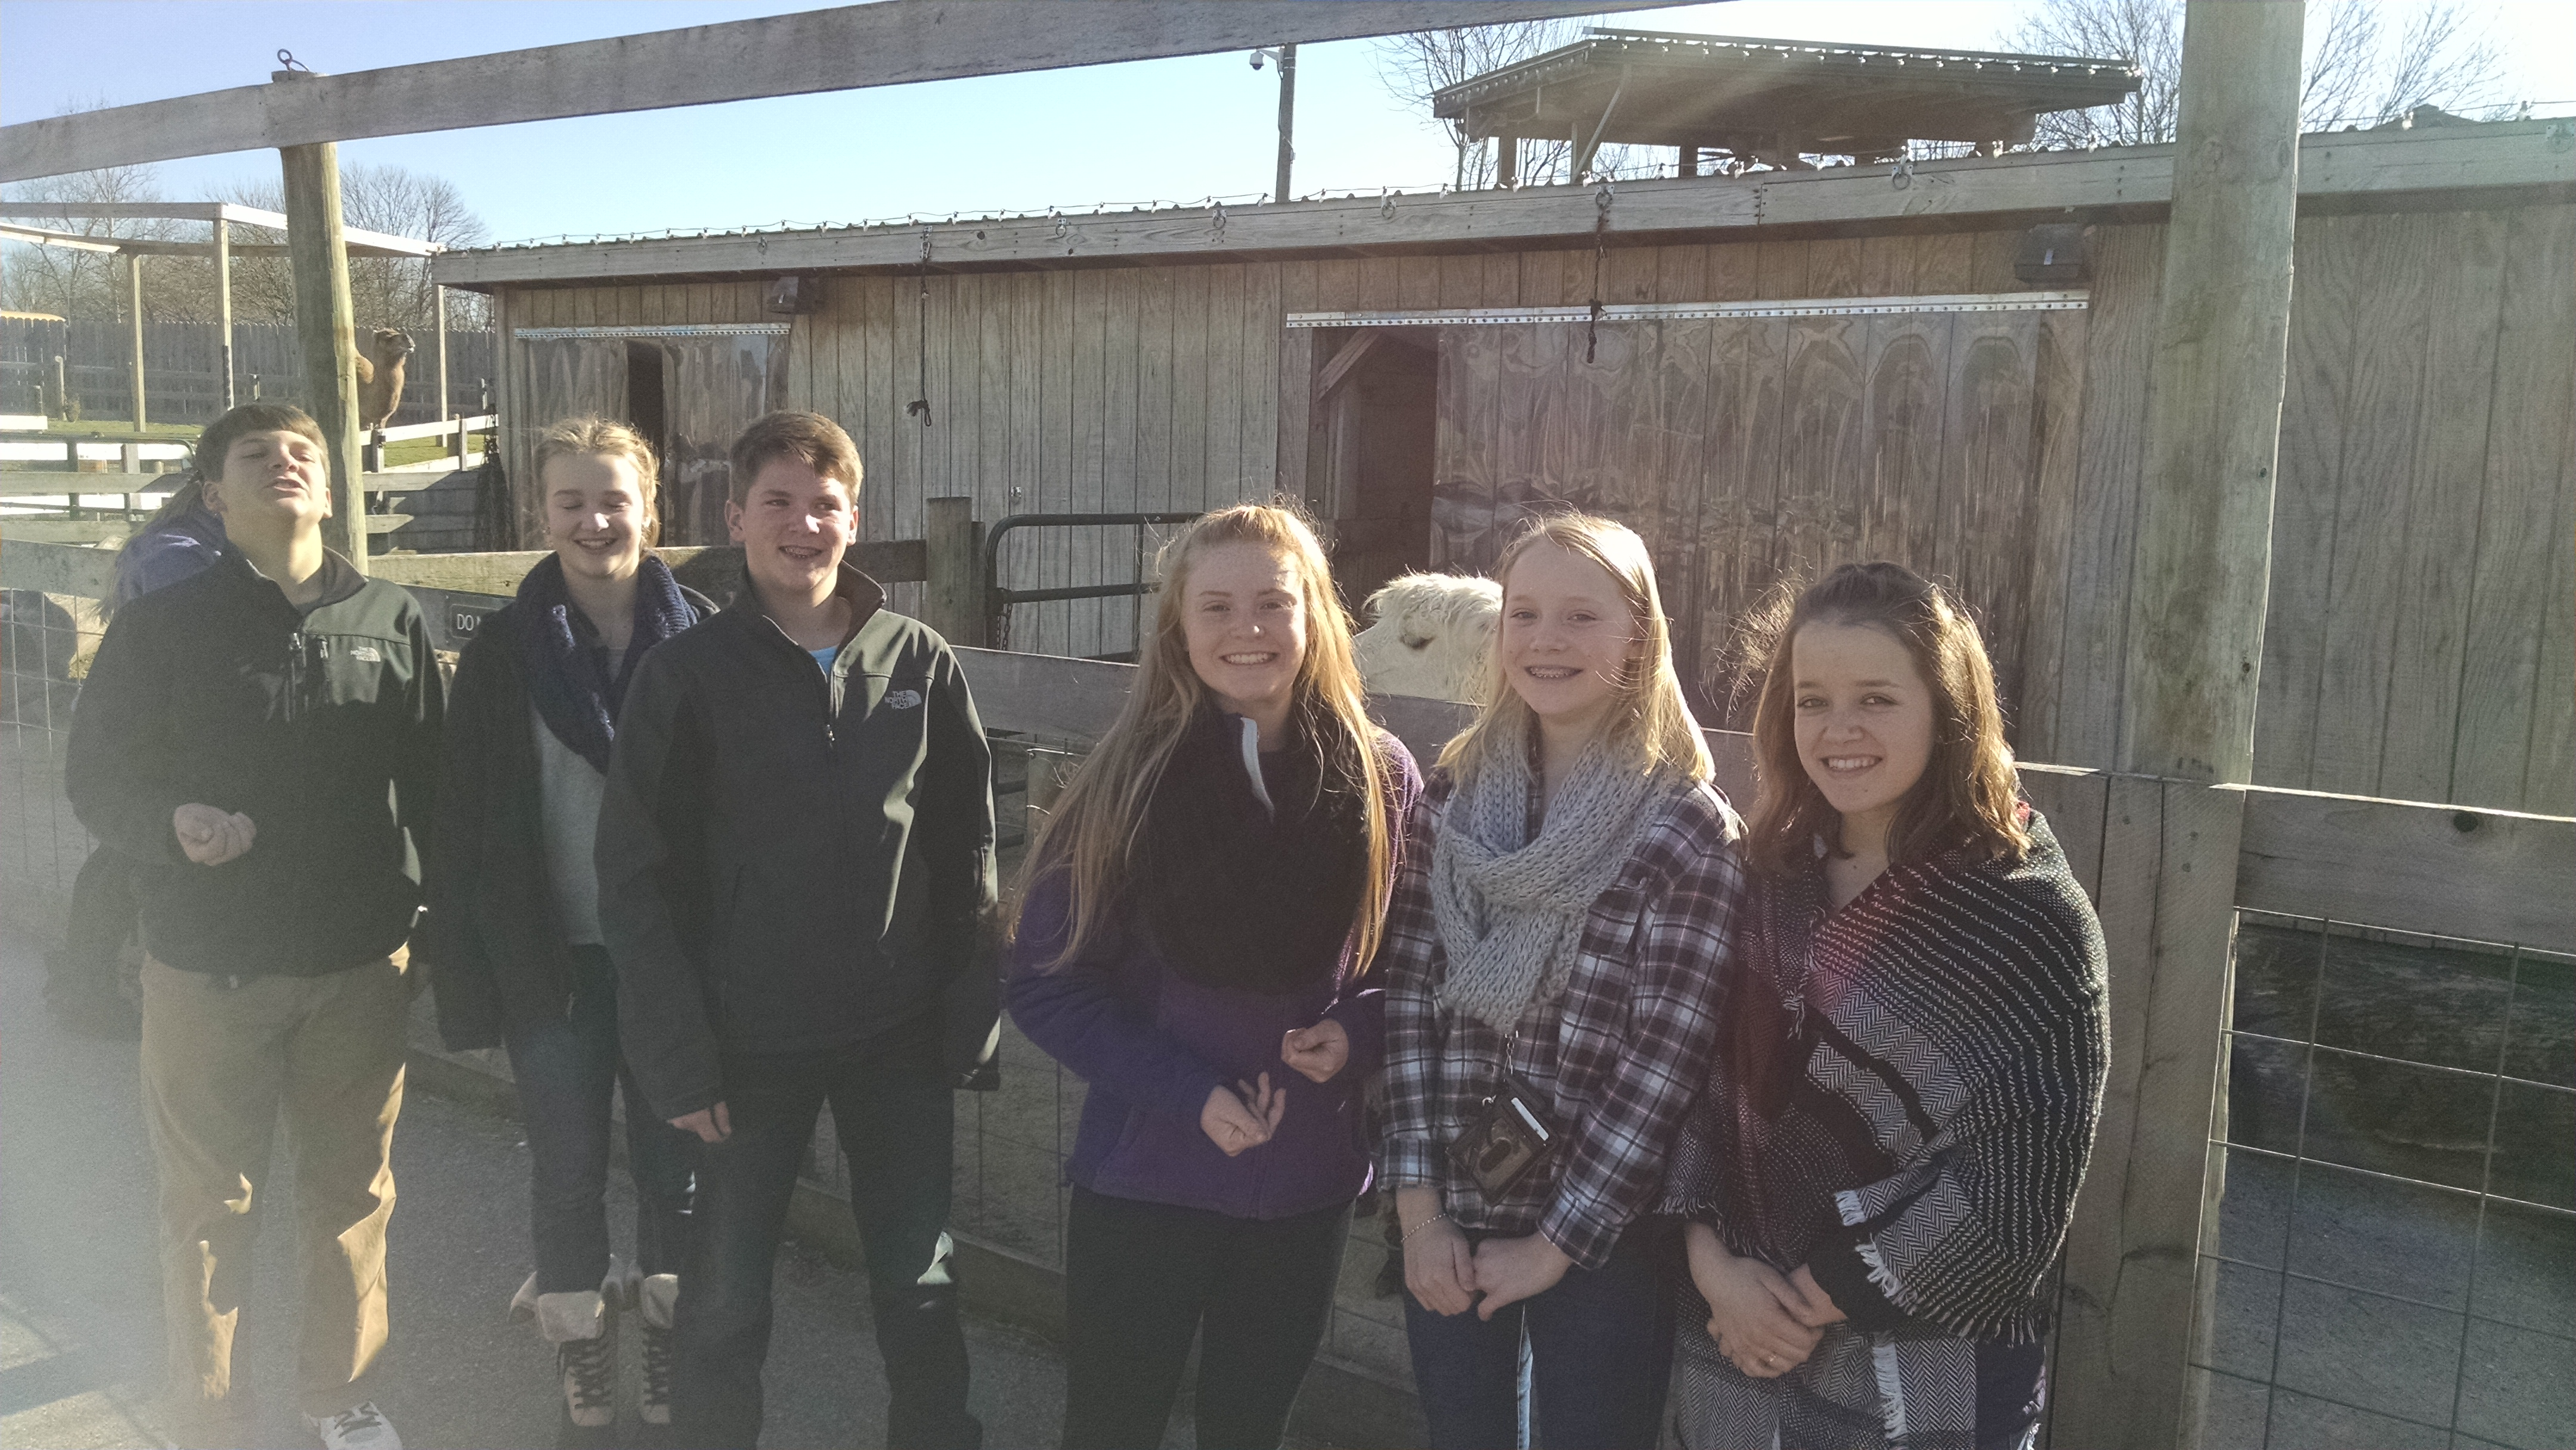 Youth Group at Petting Zoo